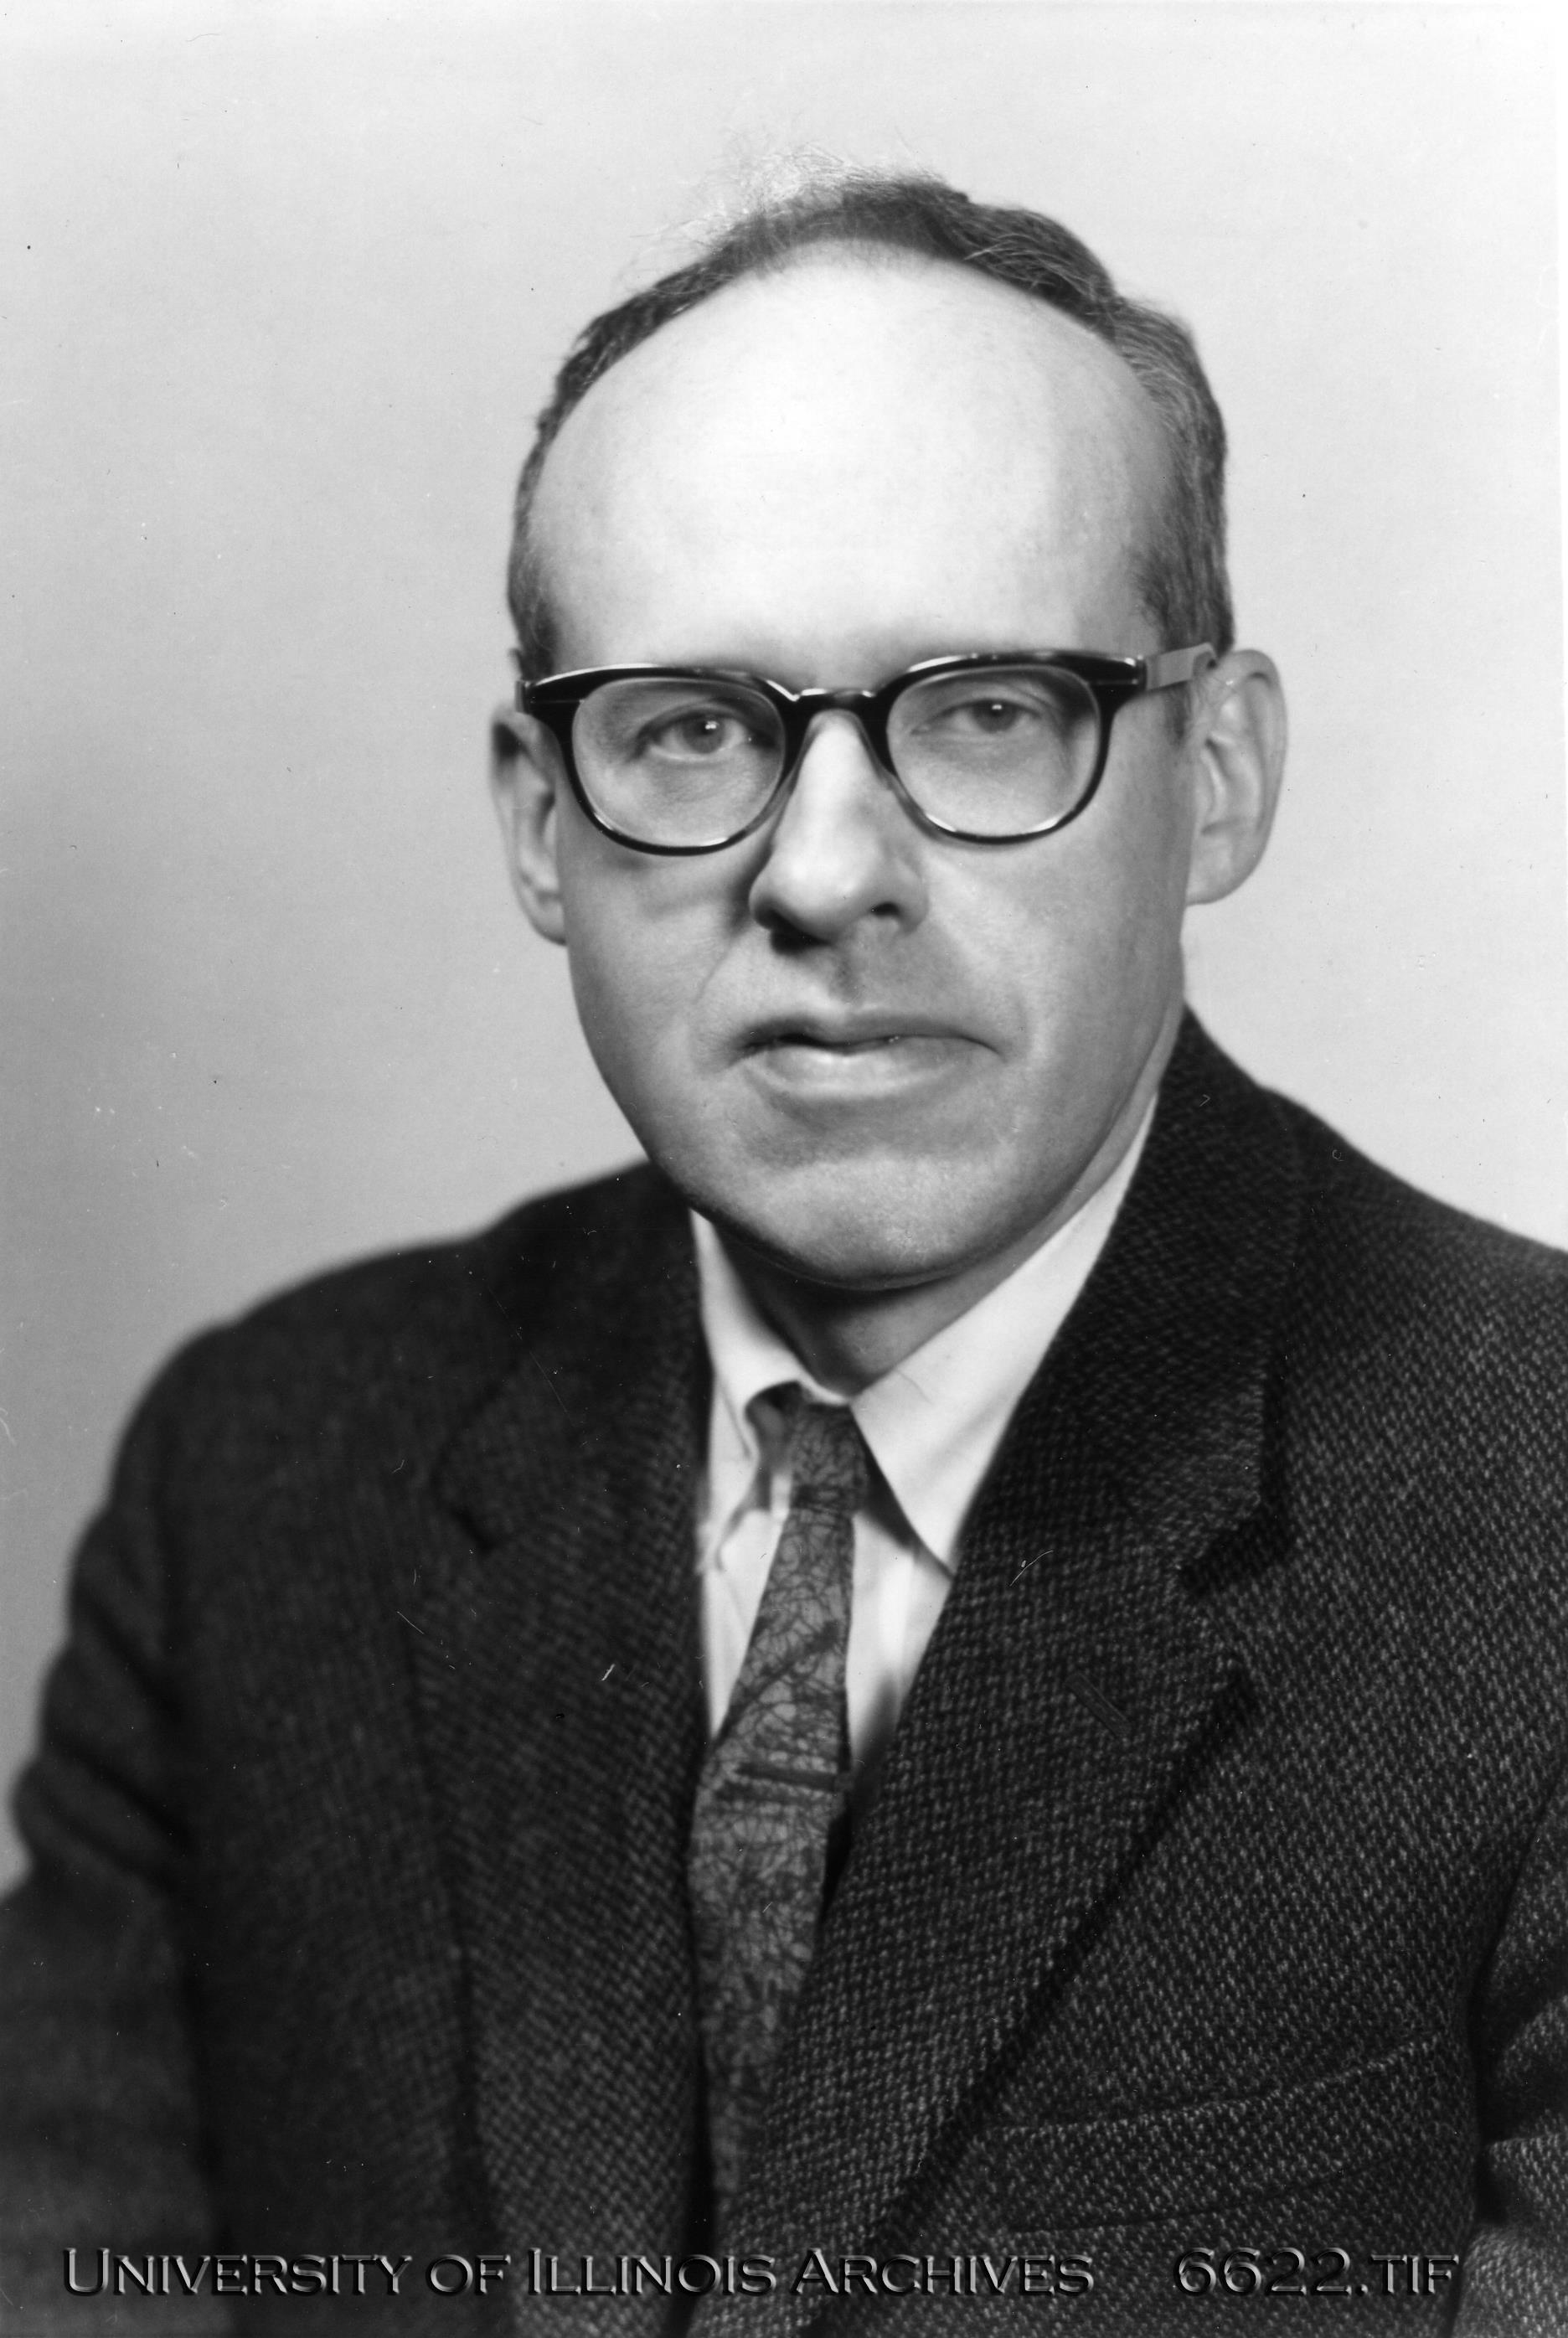 William J. Fry